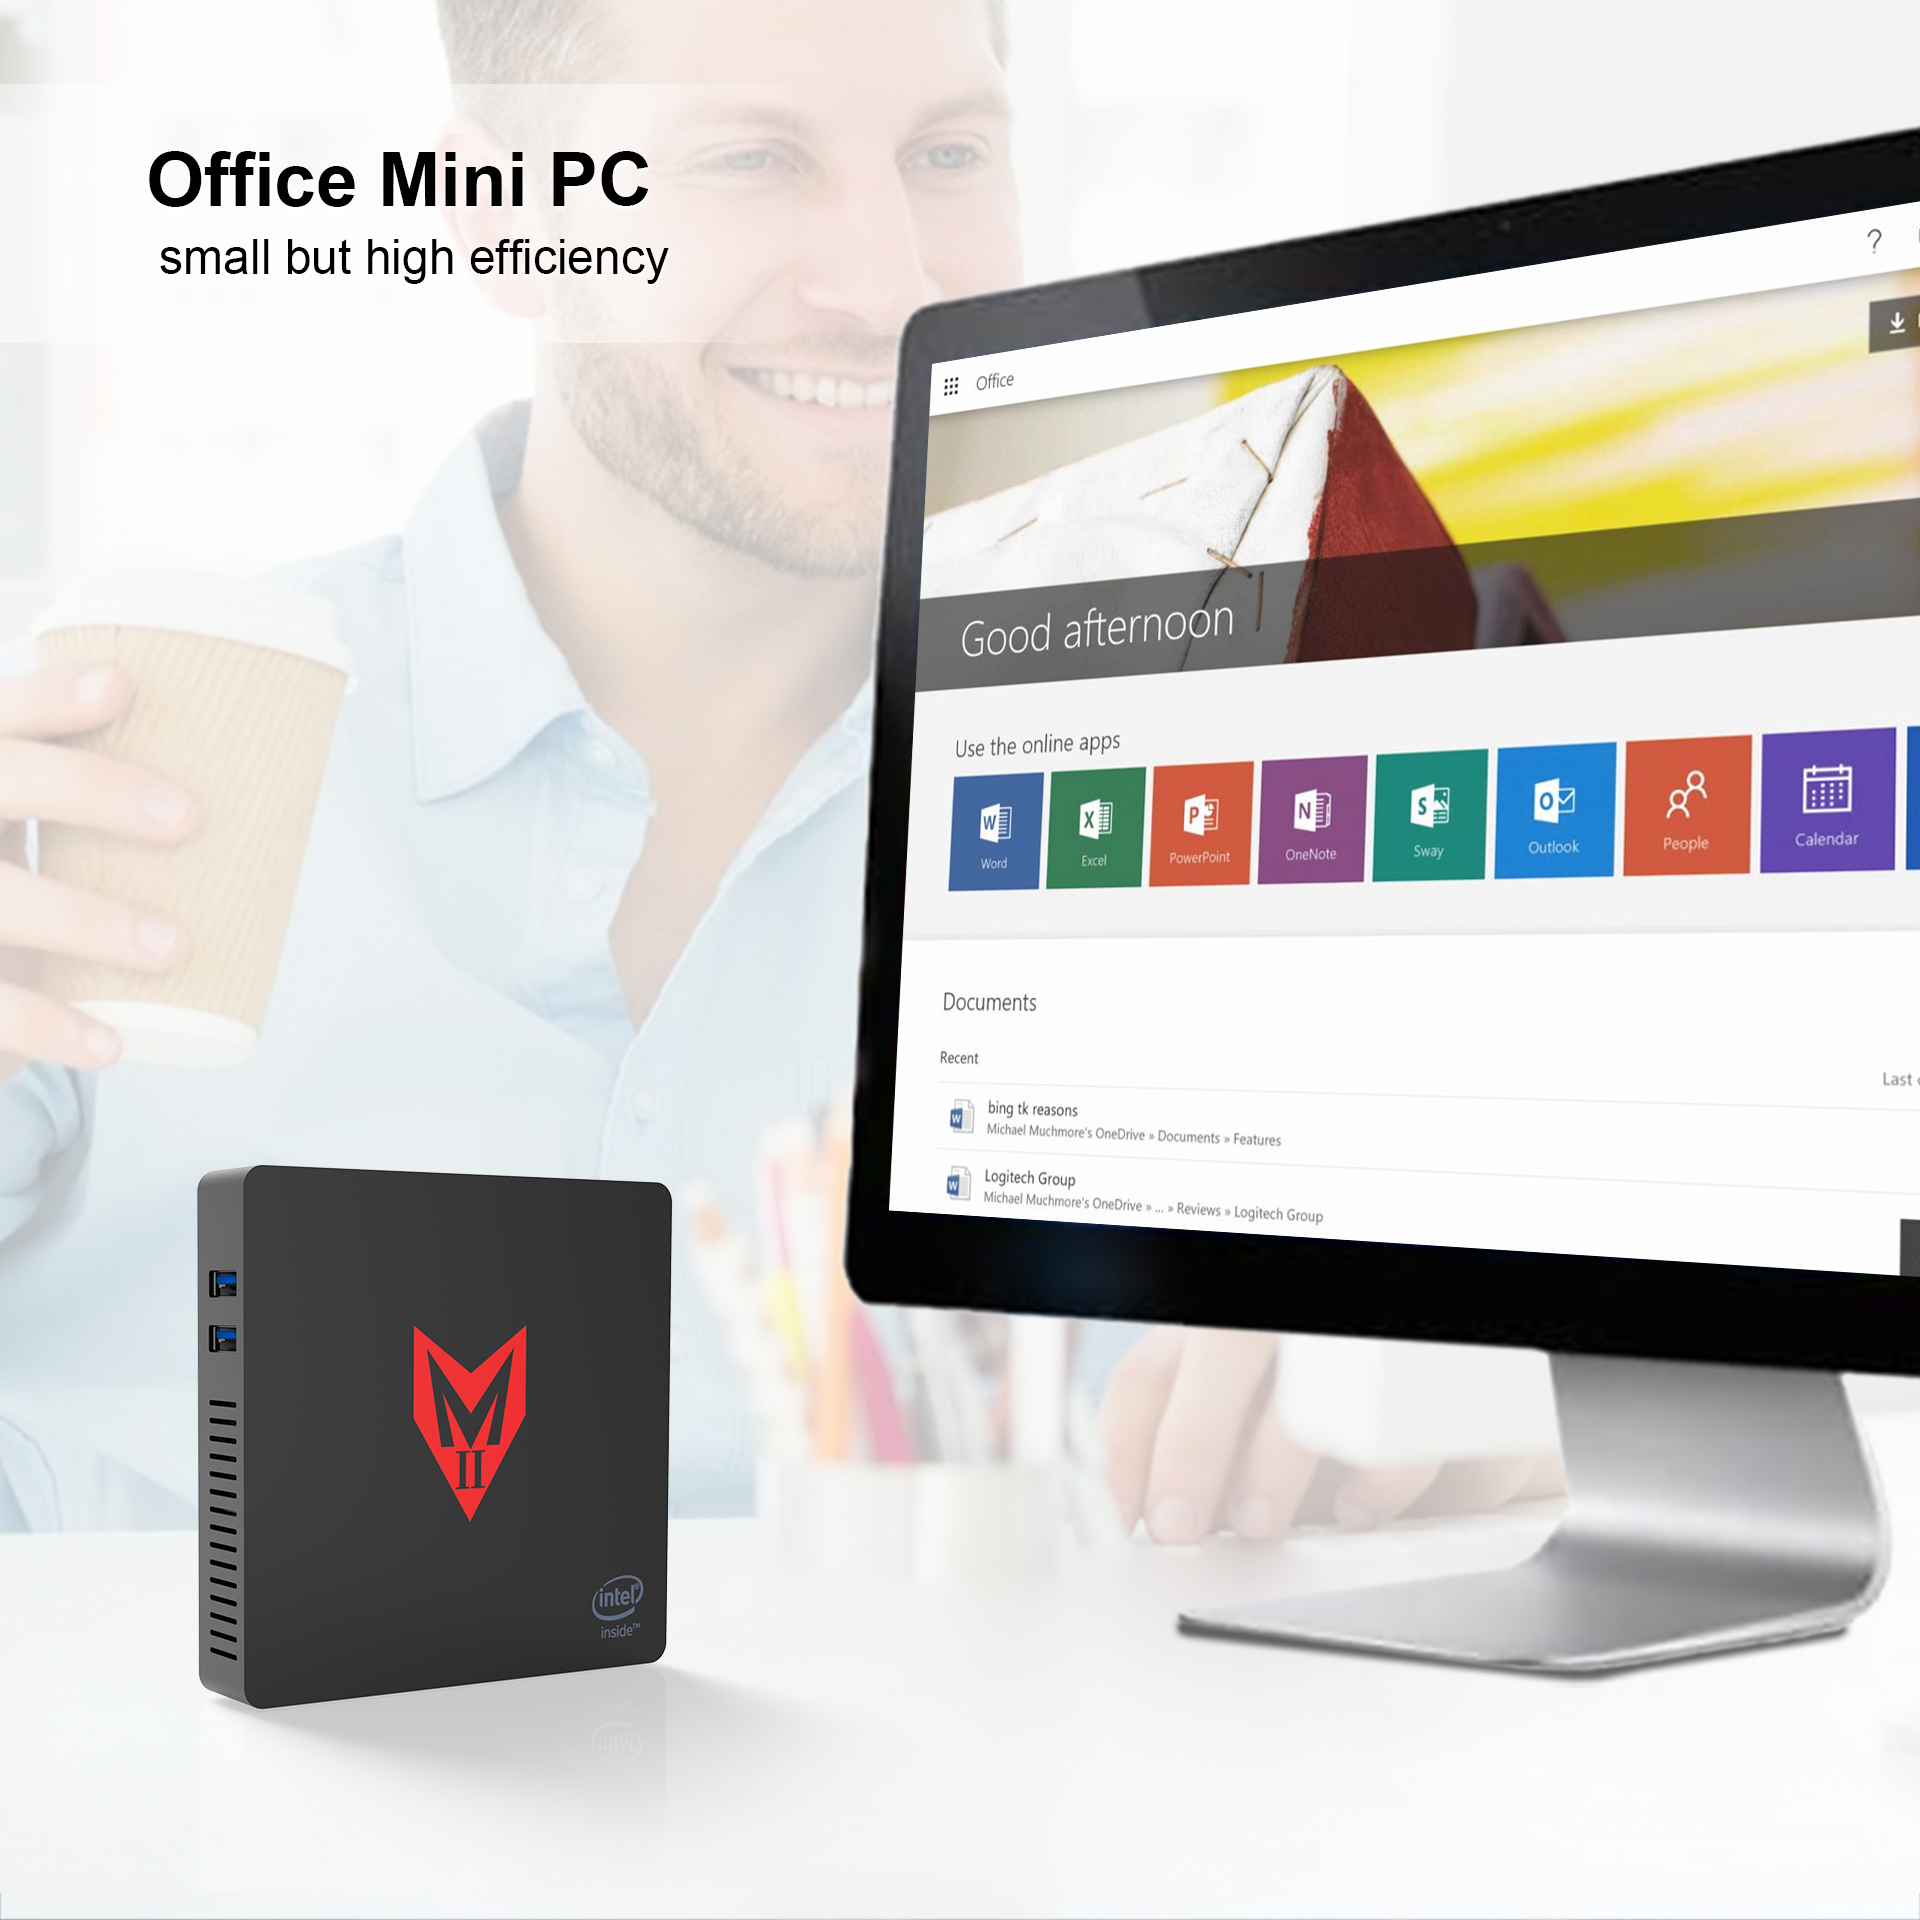 2020 MINI PC WIN10 Model MII-V Top Selling MII VER 1 Processor J3355 HD Graphics 500 4GB+64G BT 4.0 MINI PC